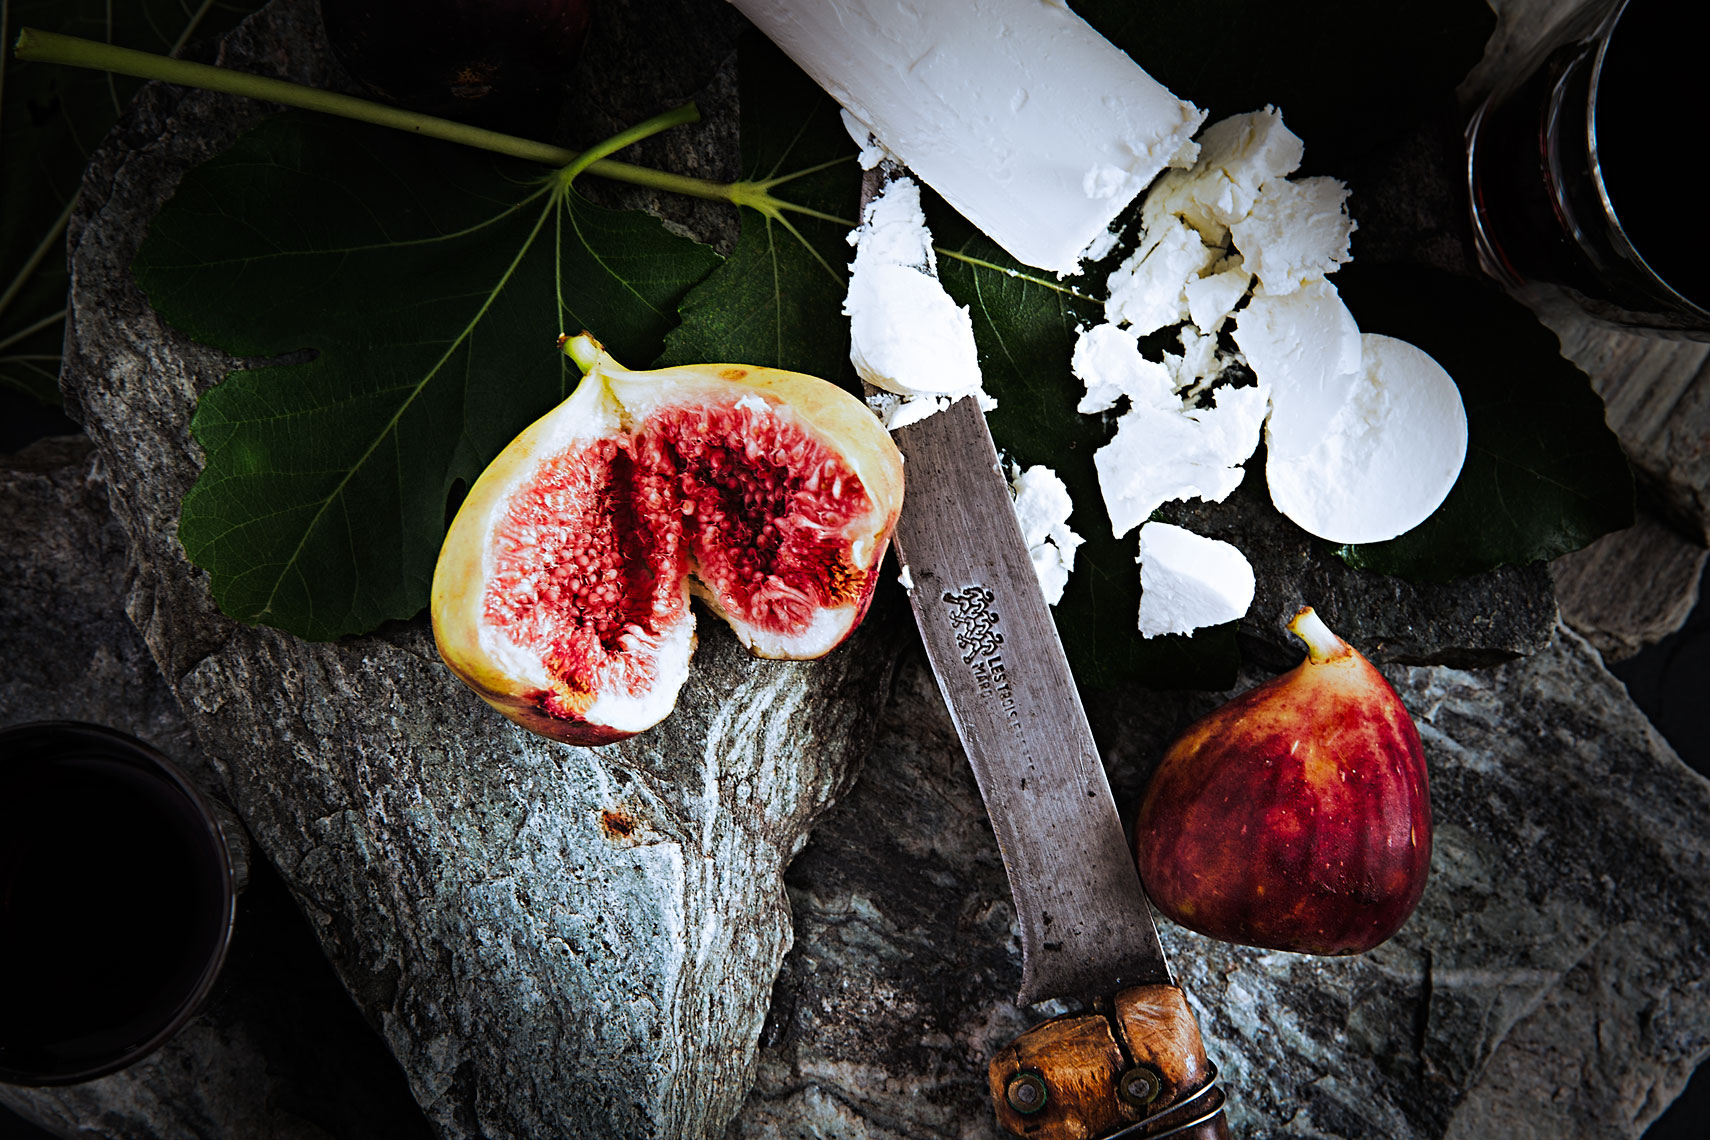 A TOAST 03 #figs #leaves #slates #goats #milk #cheese #glasses #red #wine #old #knife